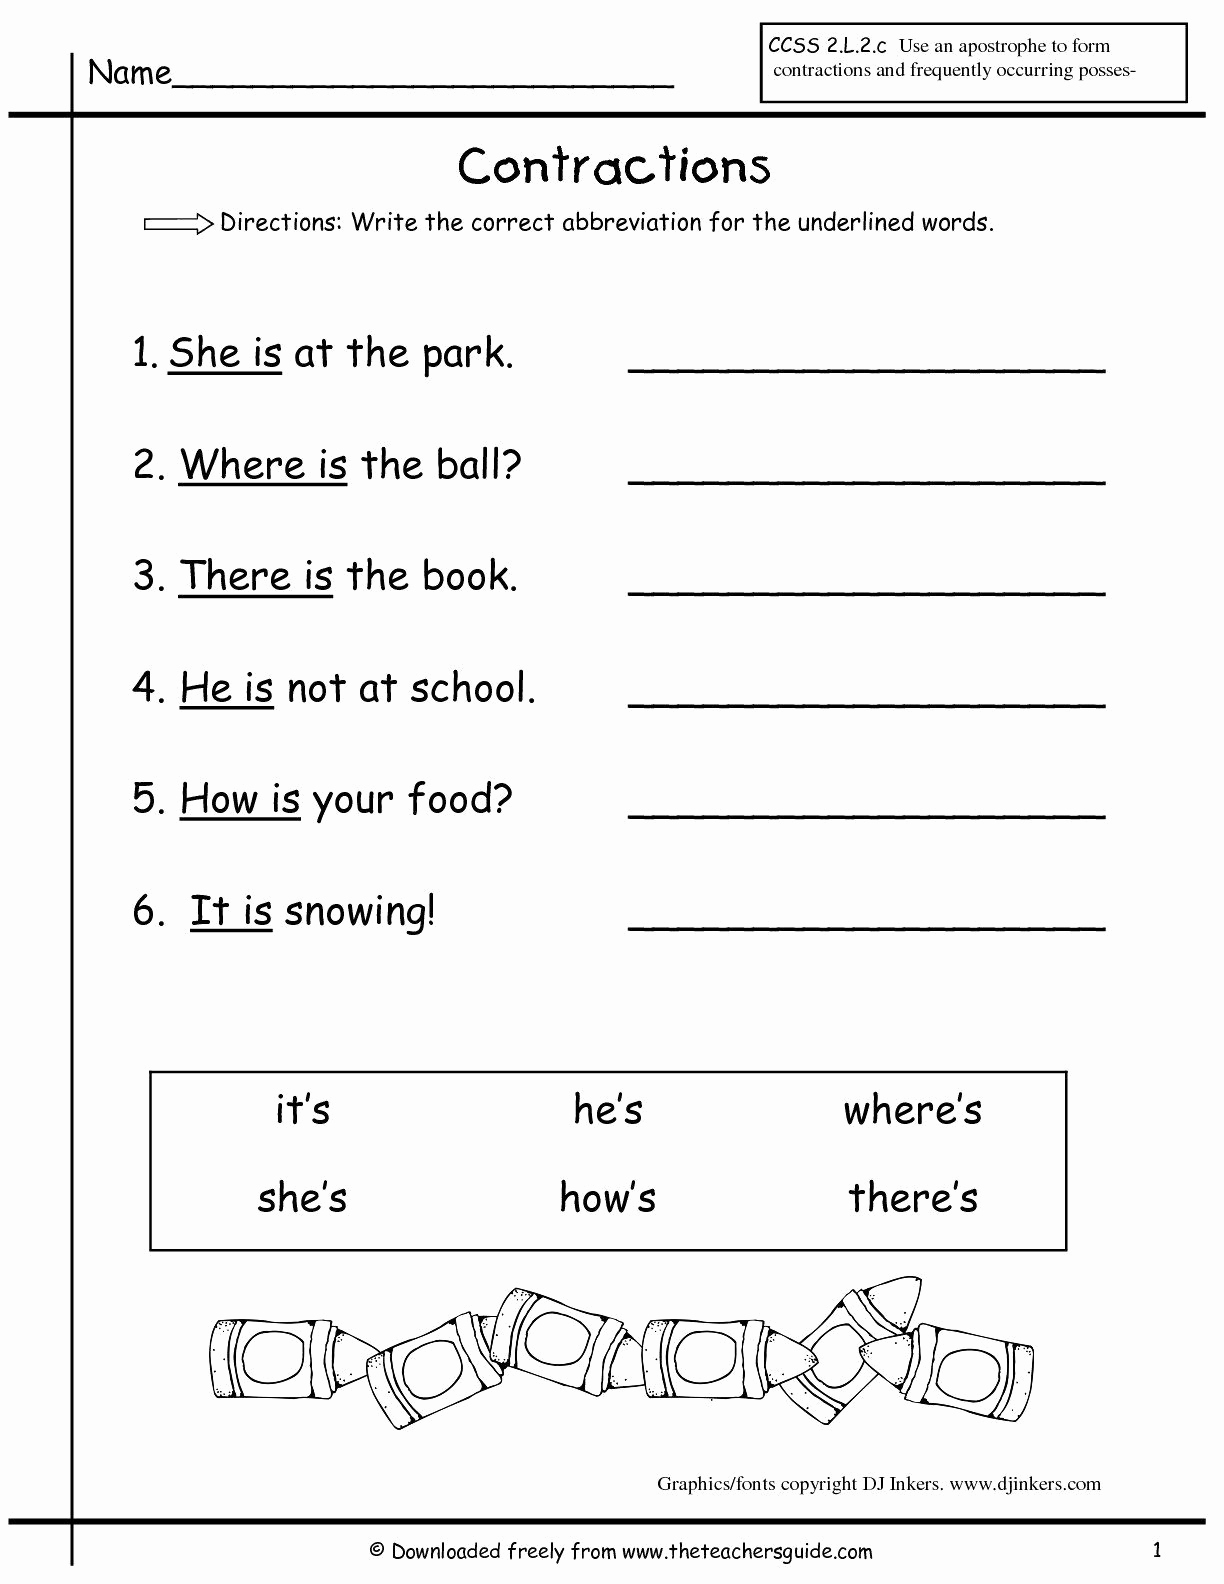 Free Subject and Predicate Worksheets Unique Subject Predicate Worksheet Pdf Lovely Subject and